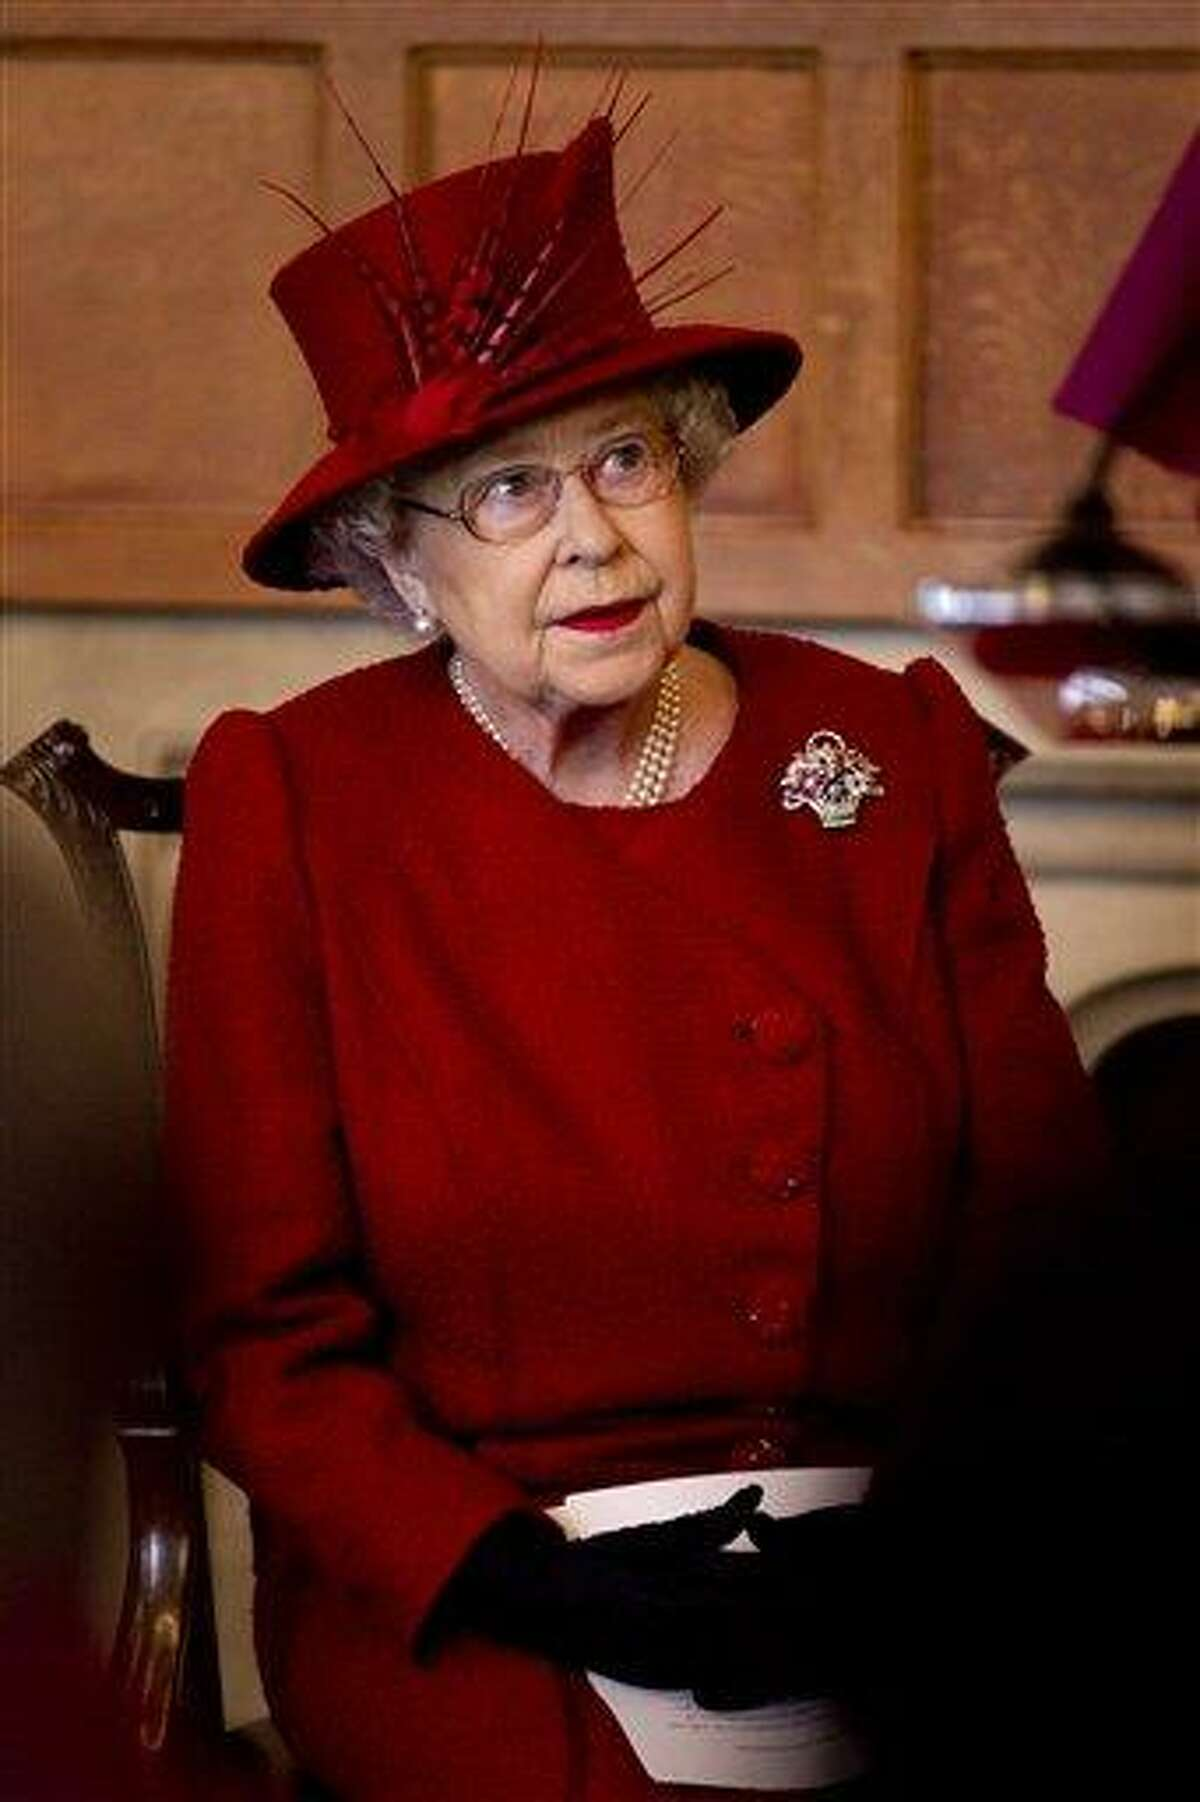 Britain's Queen Elizabeth II listens as the Archbishop of Canterbury Rowan Williams makes a speech as they attend a multi-faith reception to mark the Diamond Jubilee of the Queen's Accession at Lambeth Palace in London Wednesday. Associated Press